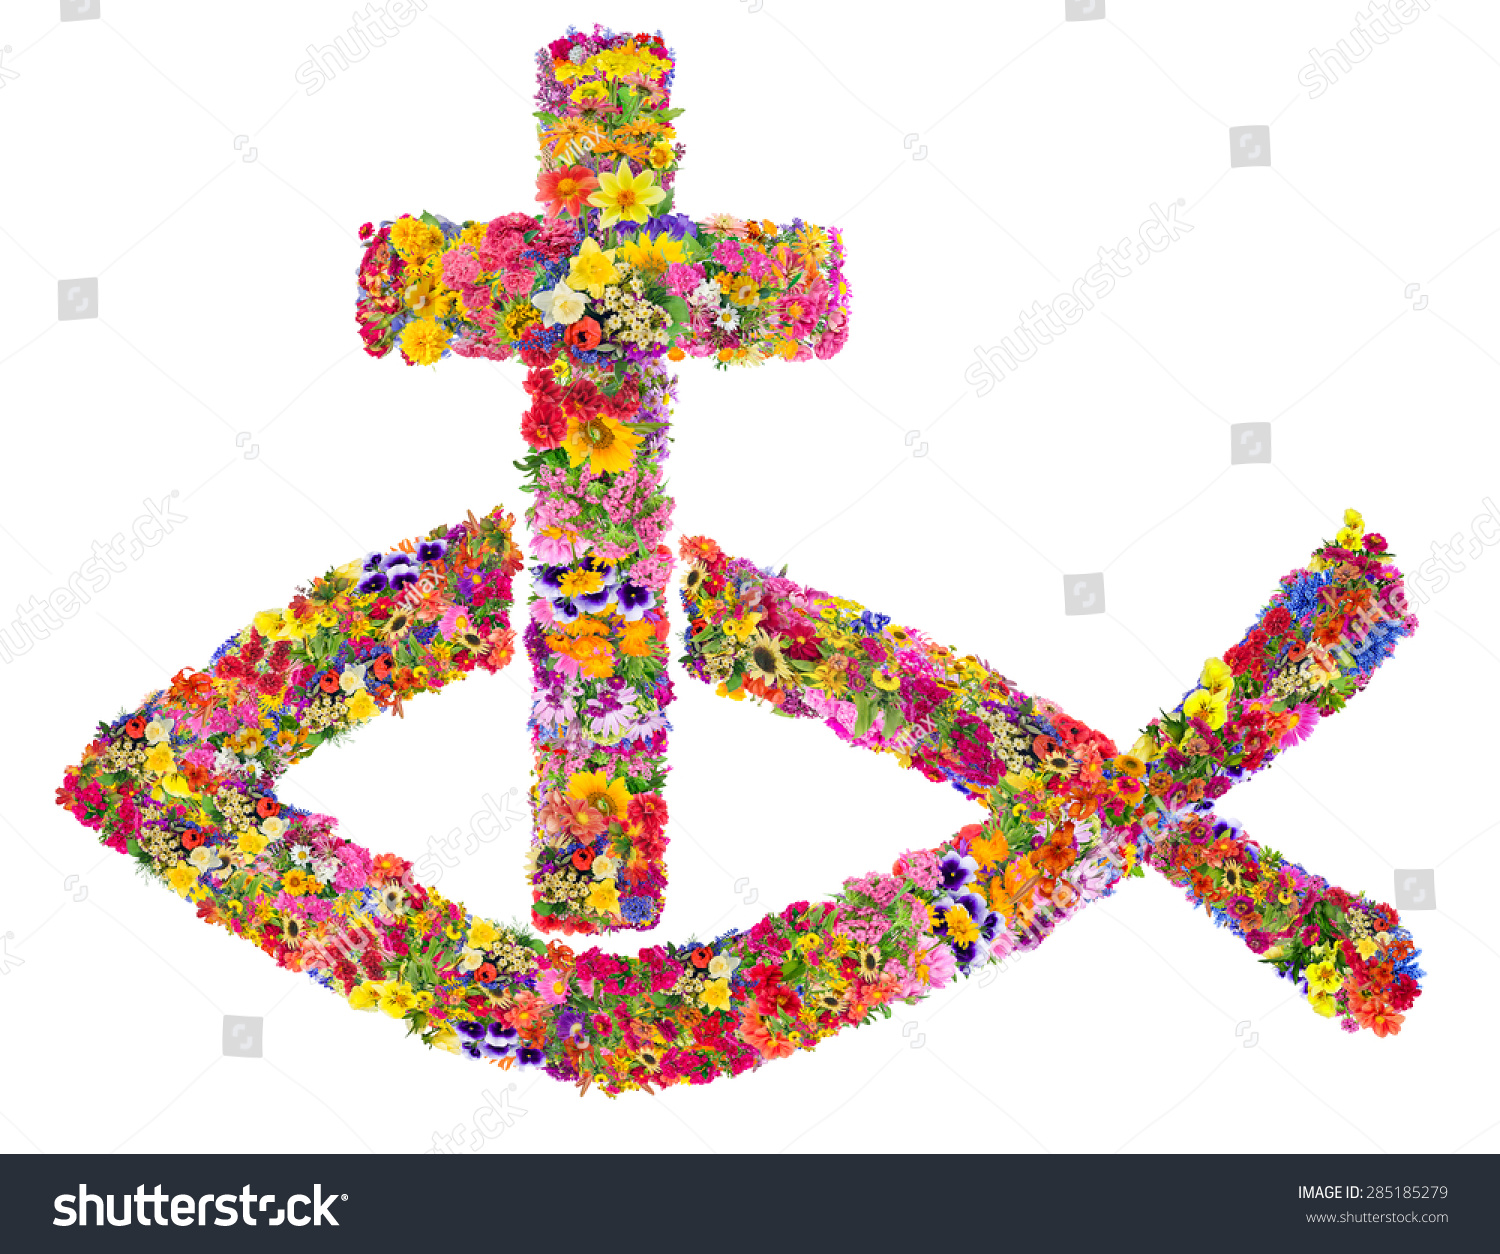 What is the name of the christian fish symbol images symbol and symbol name jesus christ fish cross stock photo 285185279 symbol of name of jesus christ fish biocorpaavc